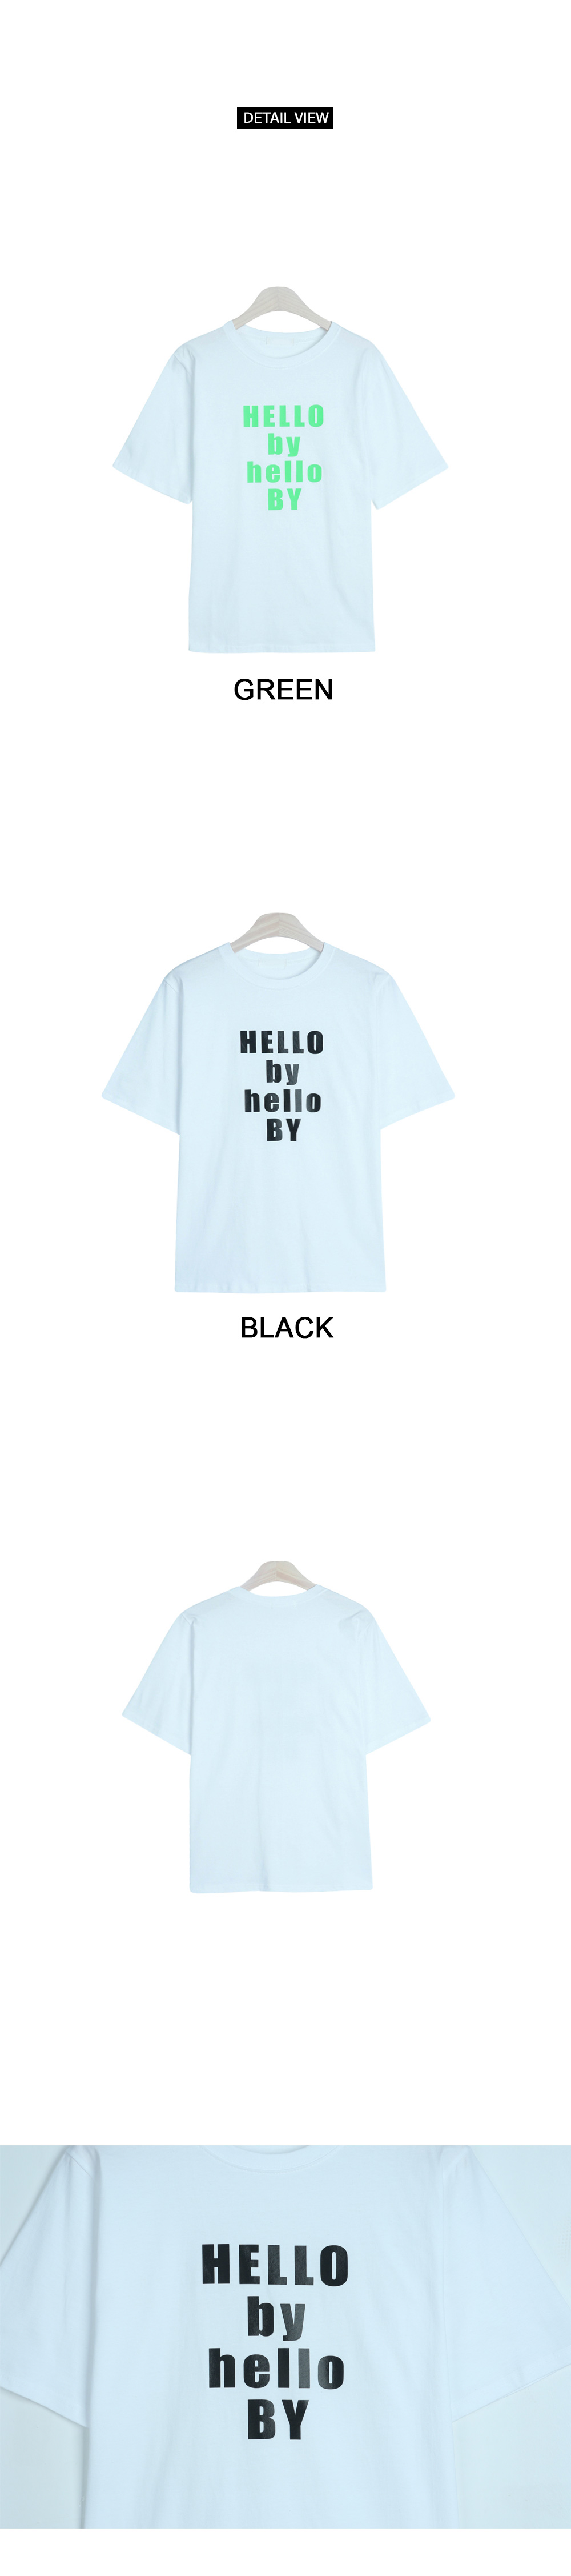 Hello hello short sleeve tee